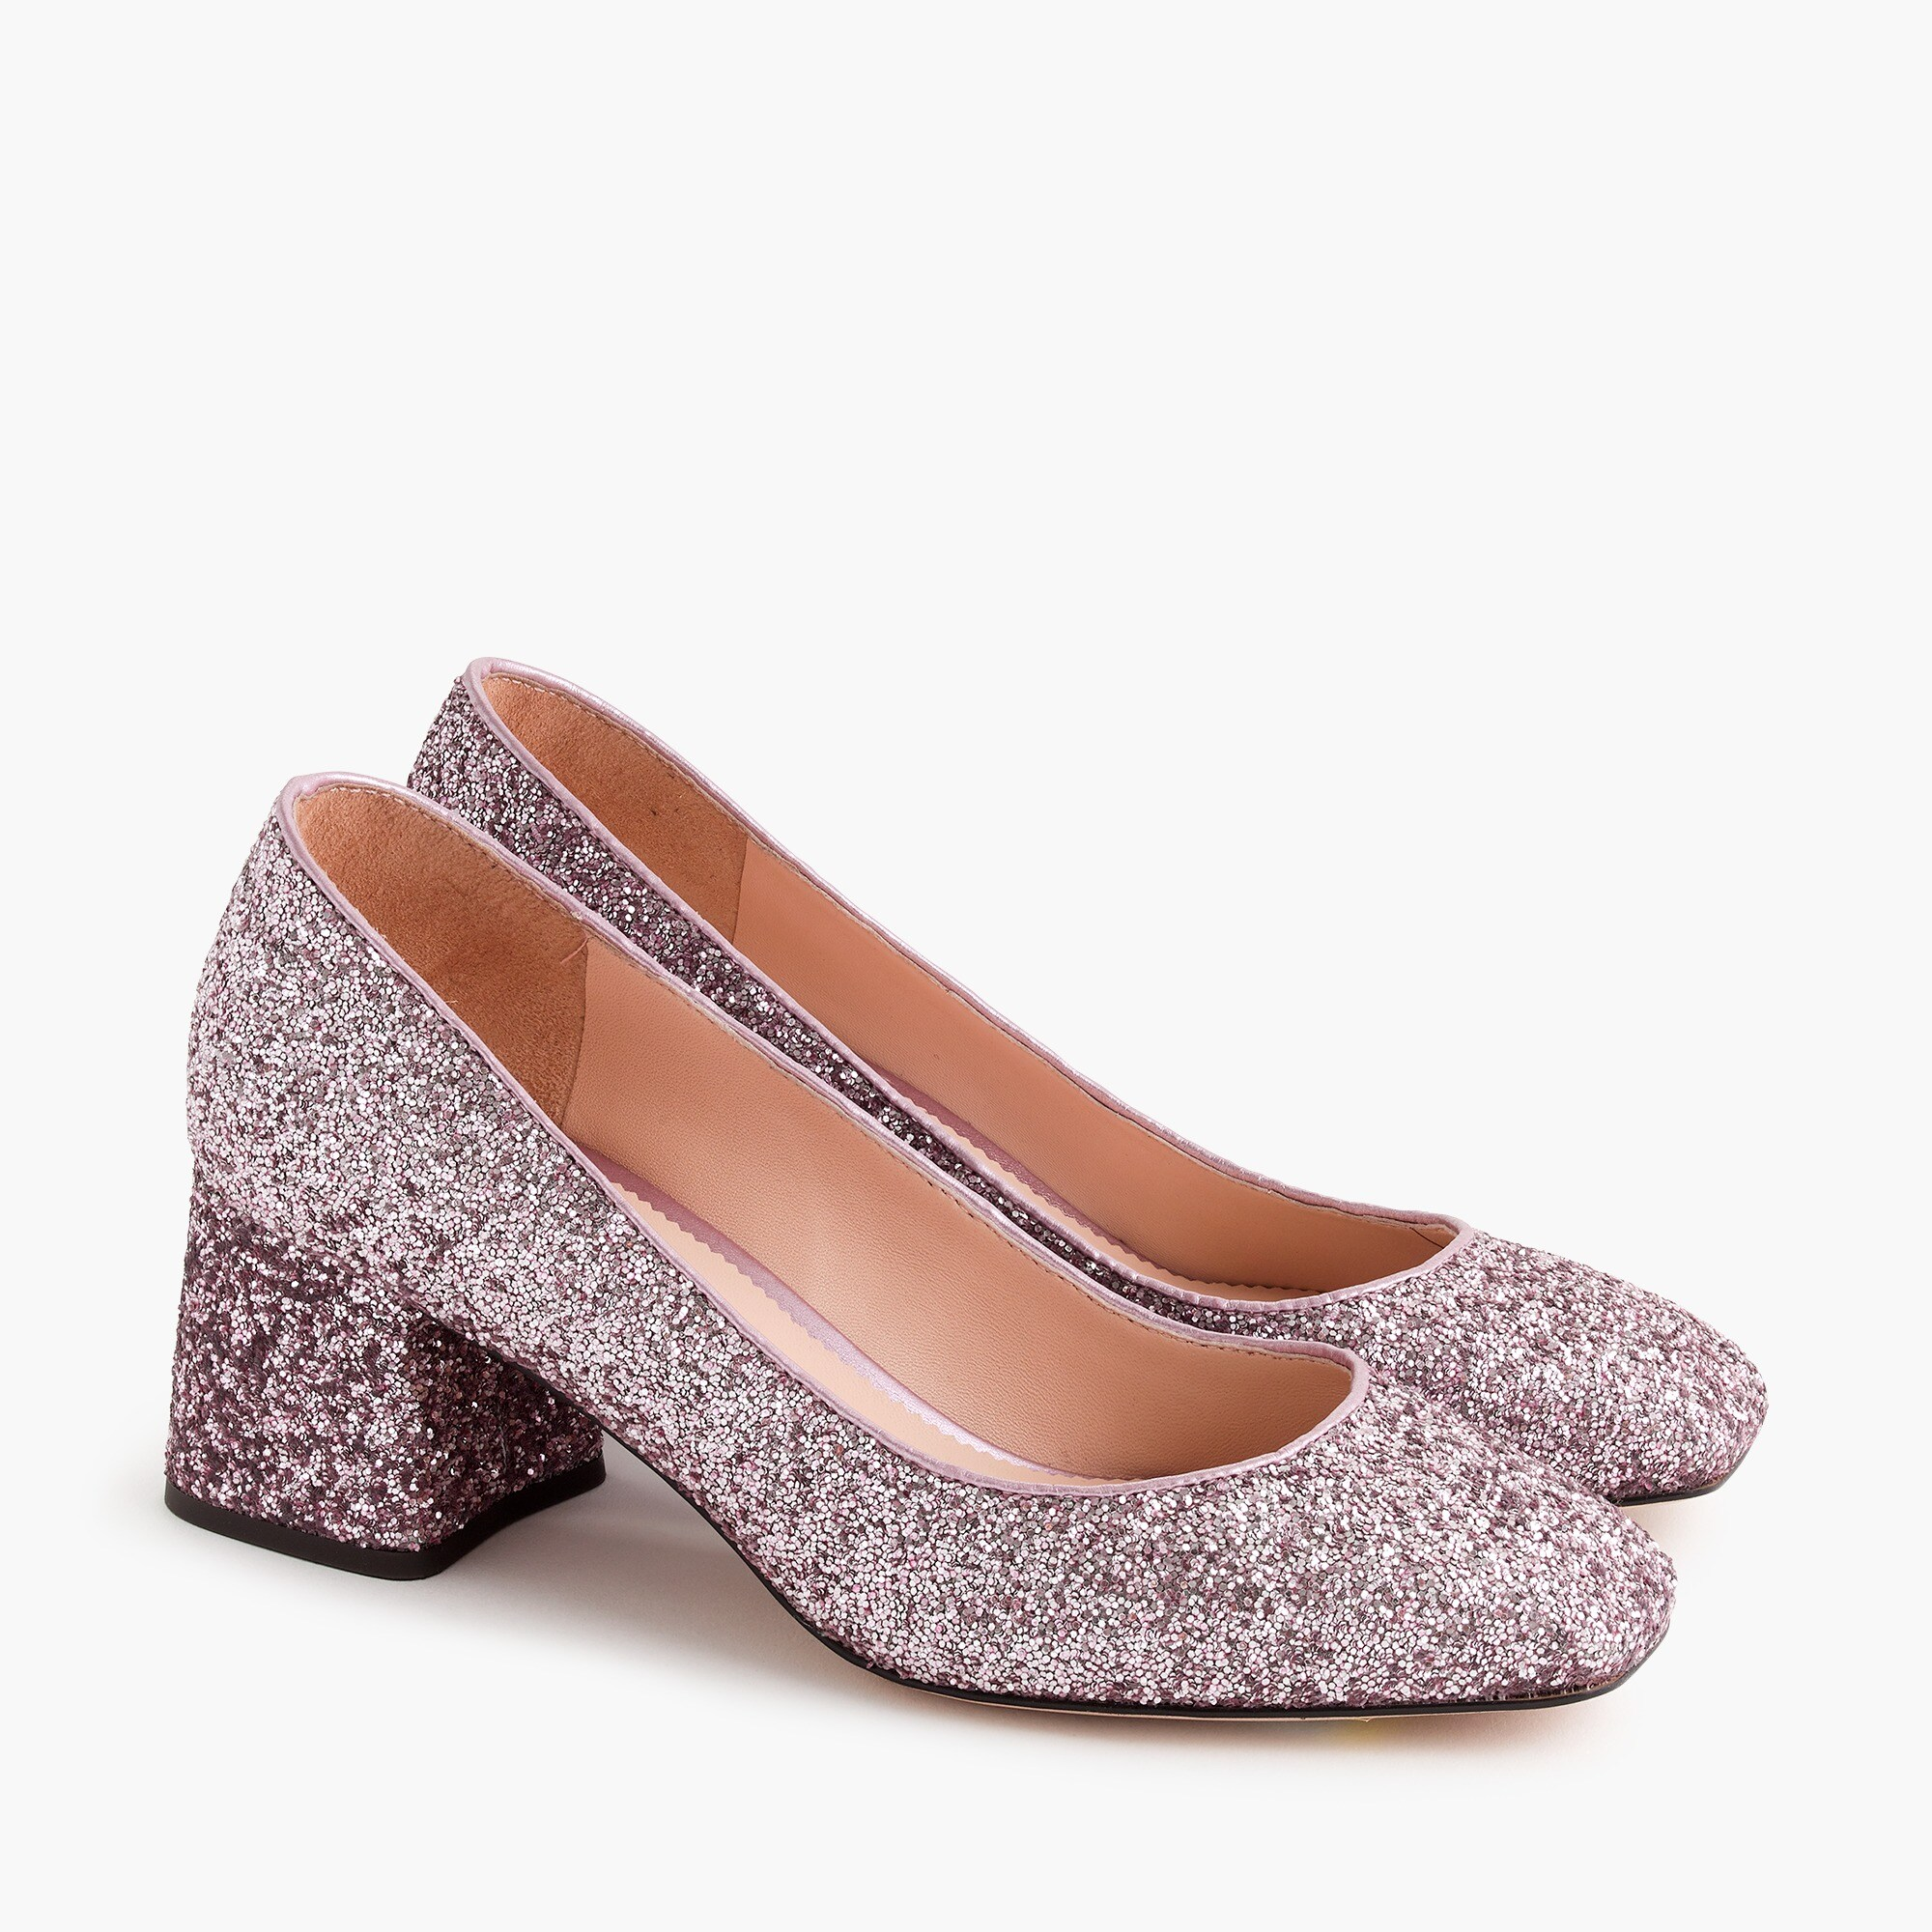 womens Block-heel pumps in glitter